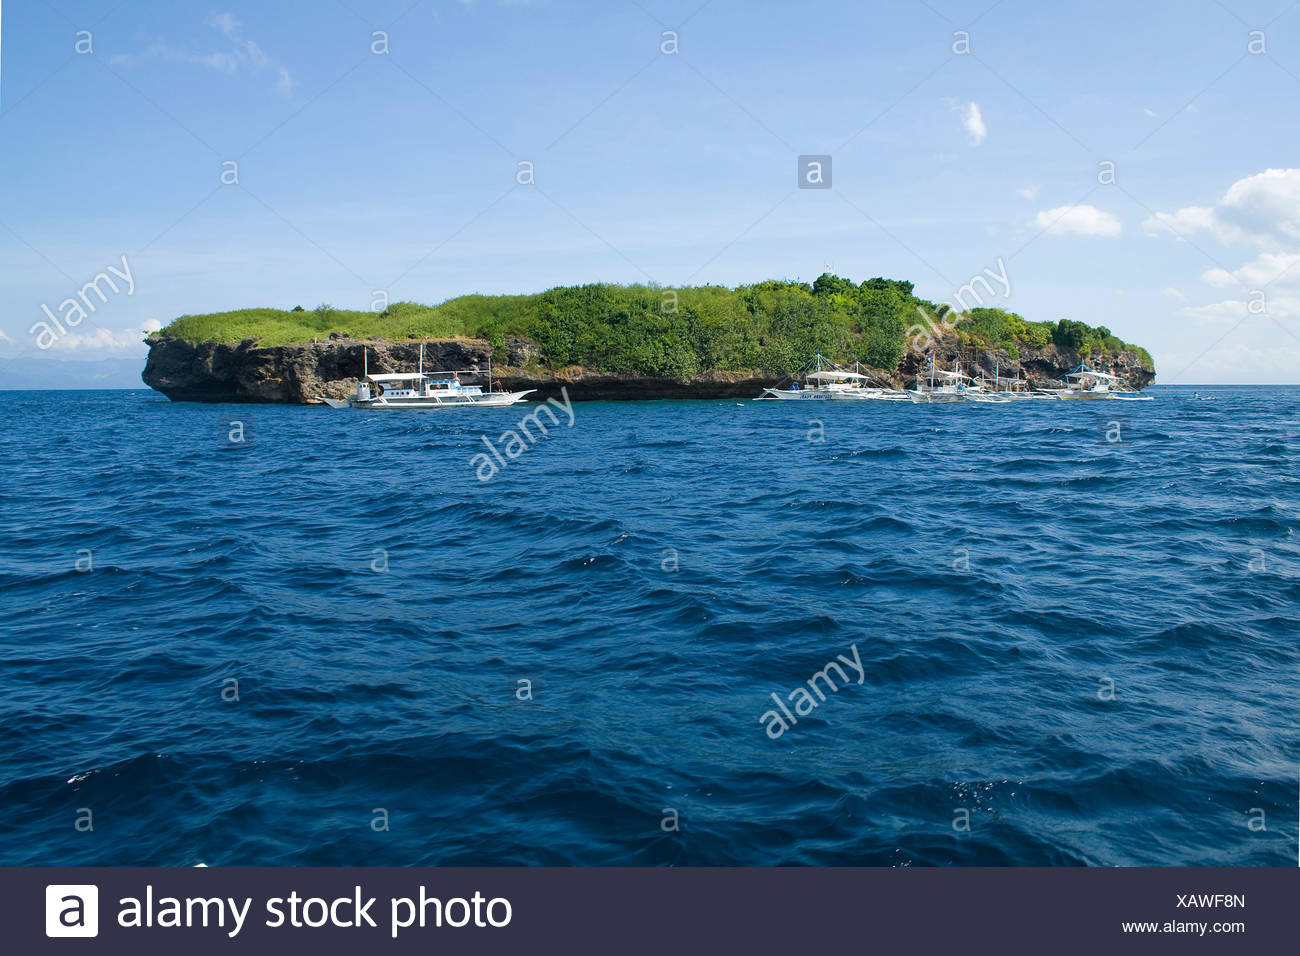 Pescador Island, well-known dive site and marine park, Moalboal, Cebu, Philippines, Indo-Pacific region, Asia - Stock Image